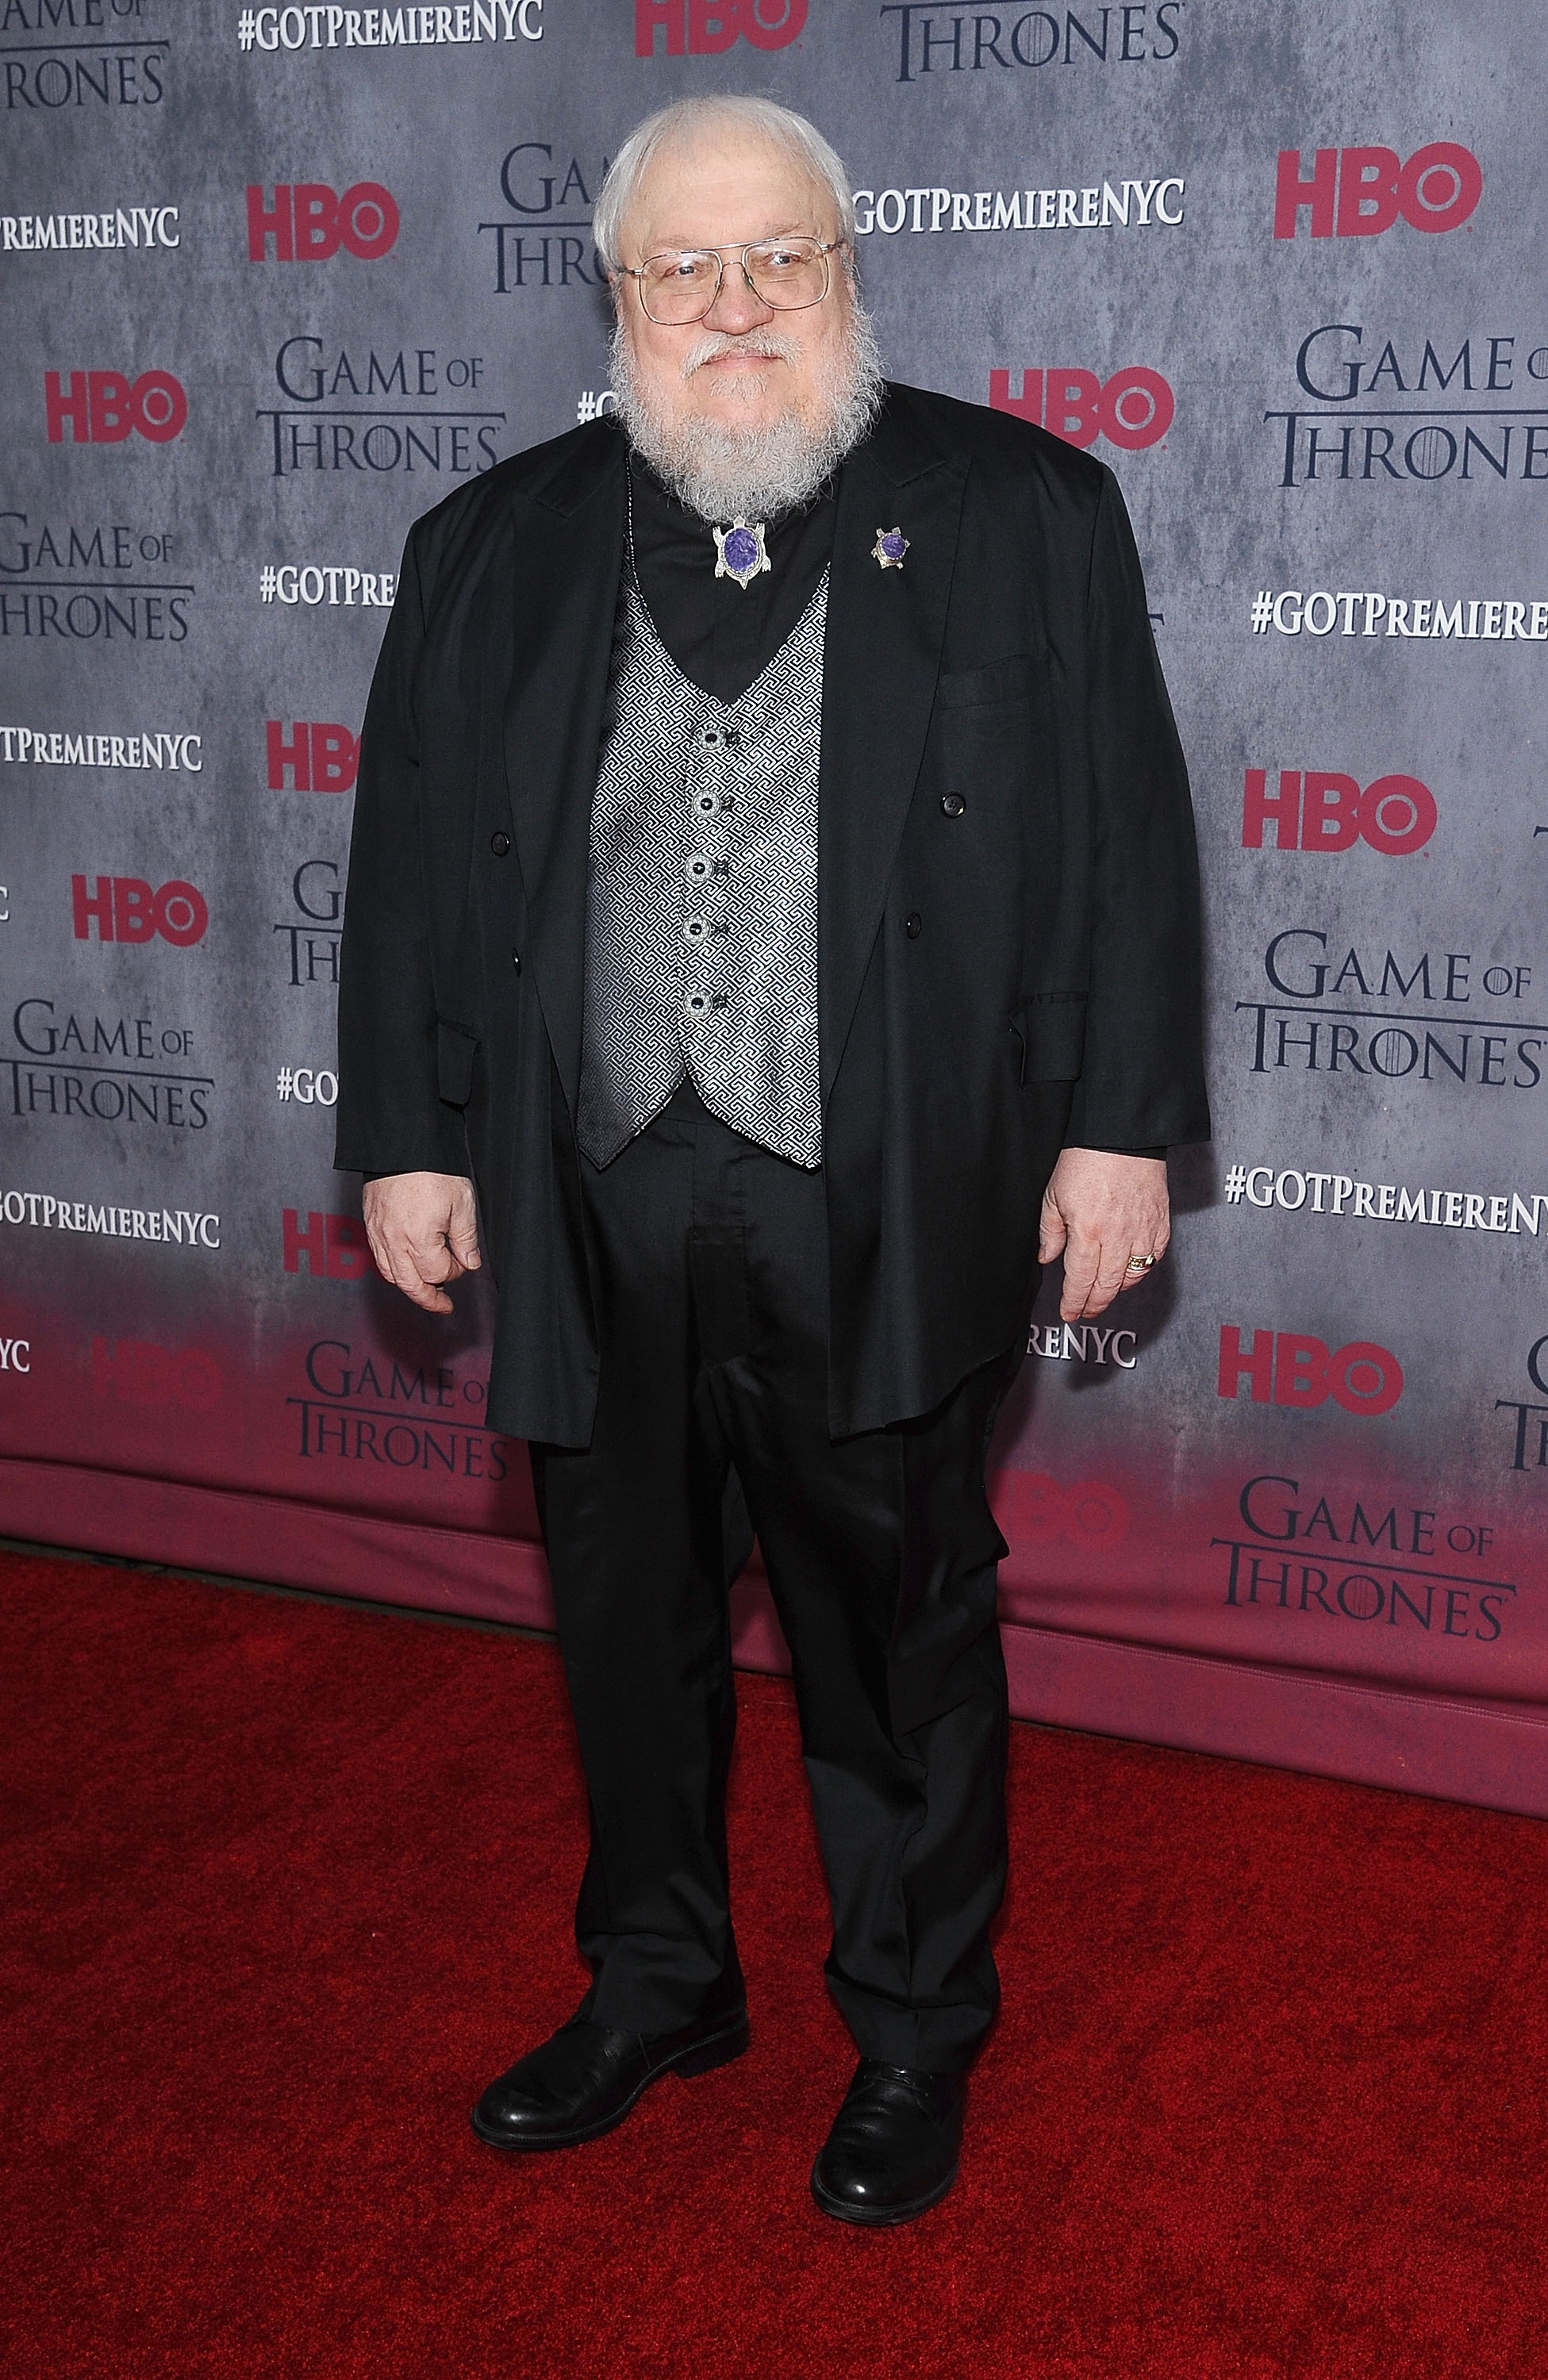 George R.R. Martin at Avery Fisher Hall, Lincoln Center on March 18, 2014 in New York City.